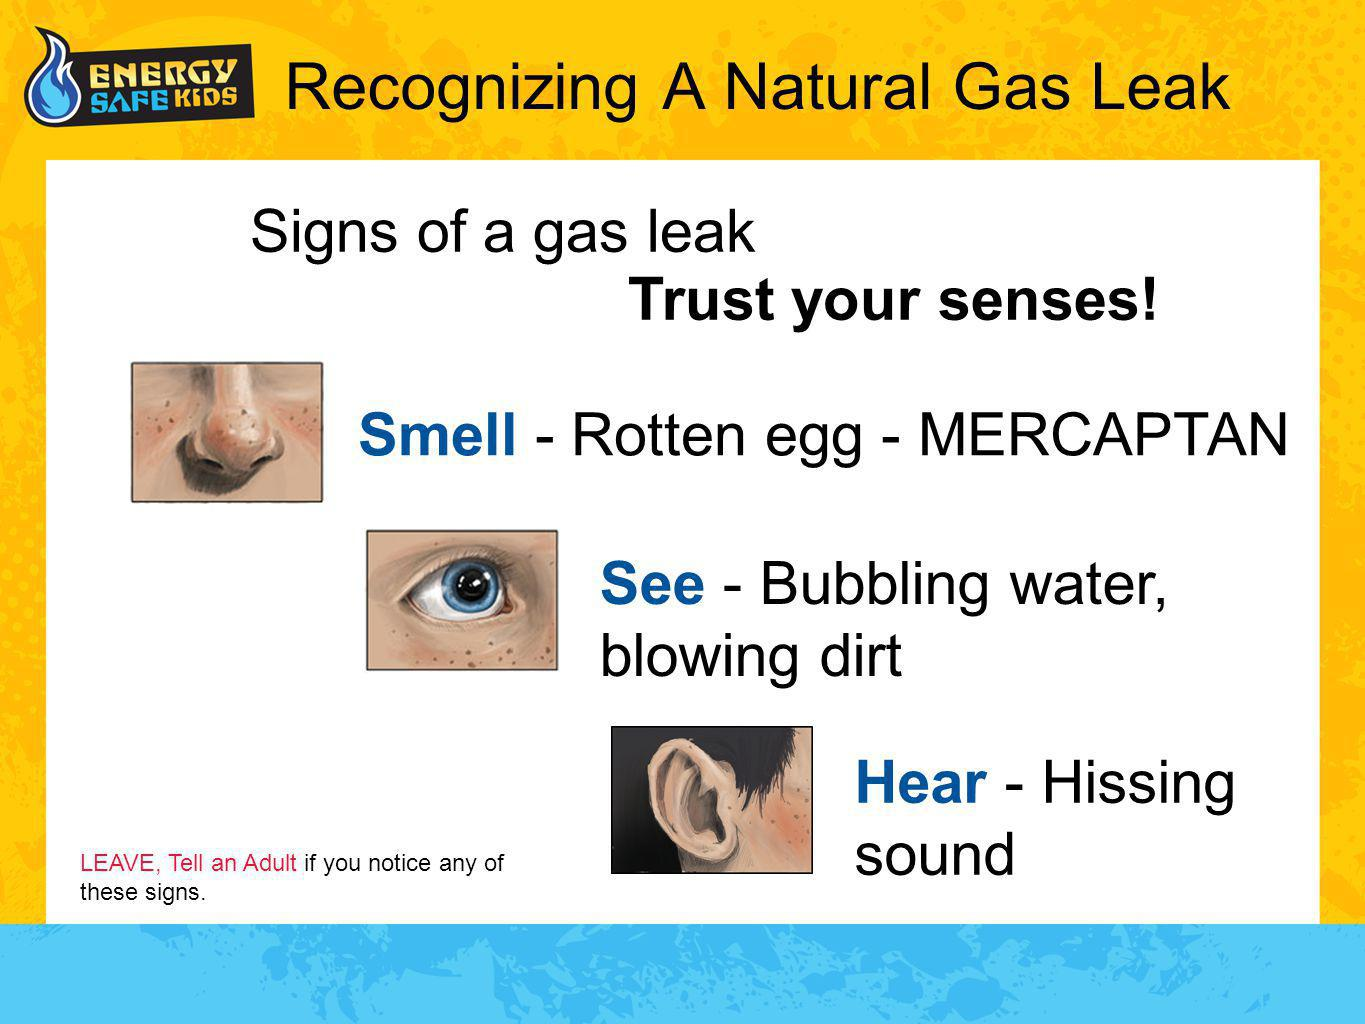 Recognizing A Natural Gas Leak Signs of a gas leak Trust your senses! LEAVE, Tell an Adult if you notice any of these signs. Smell - Rotten egg - MERC